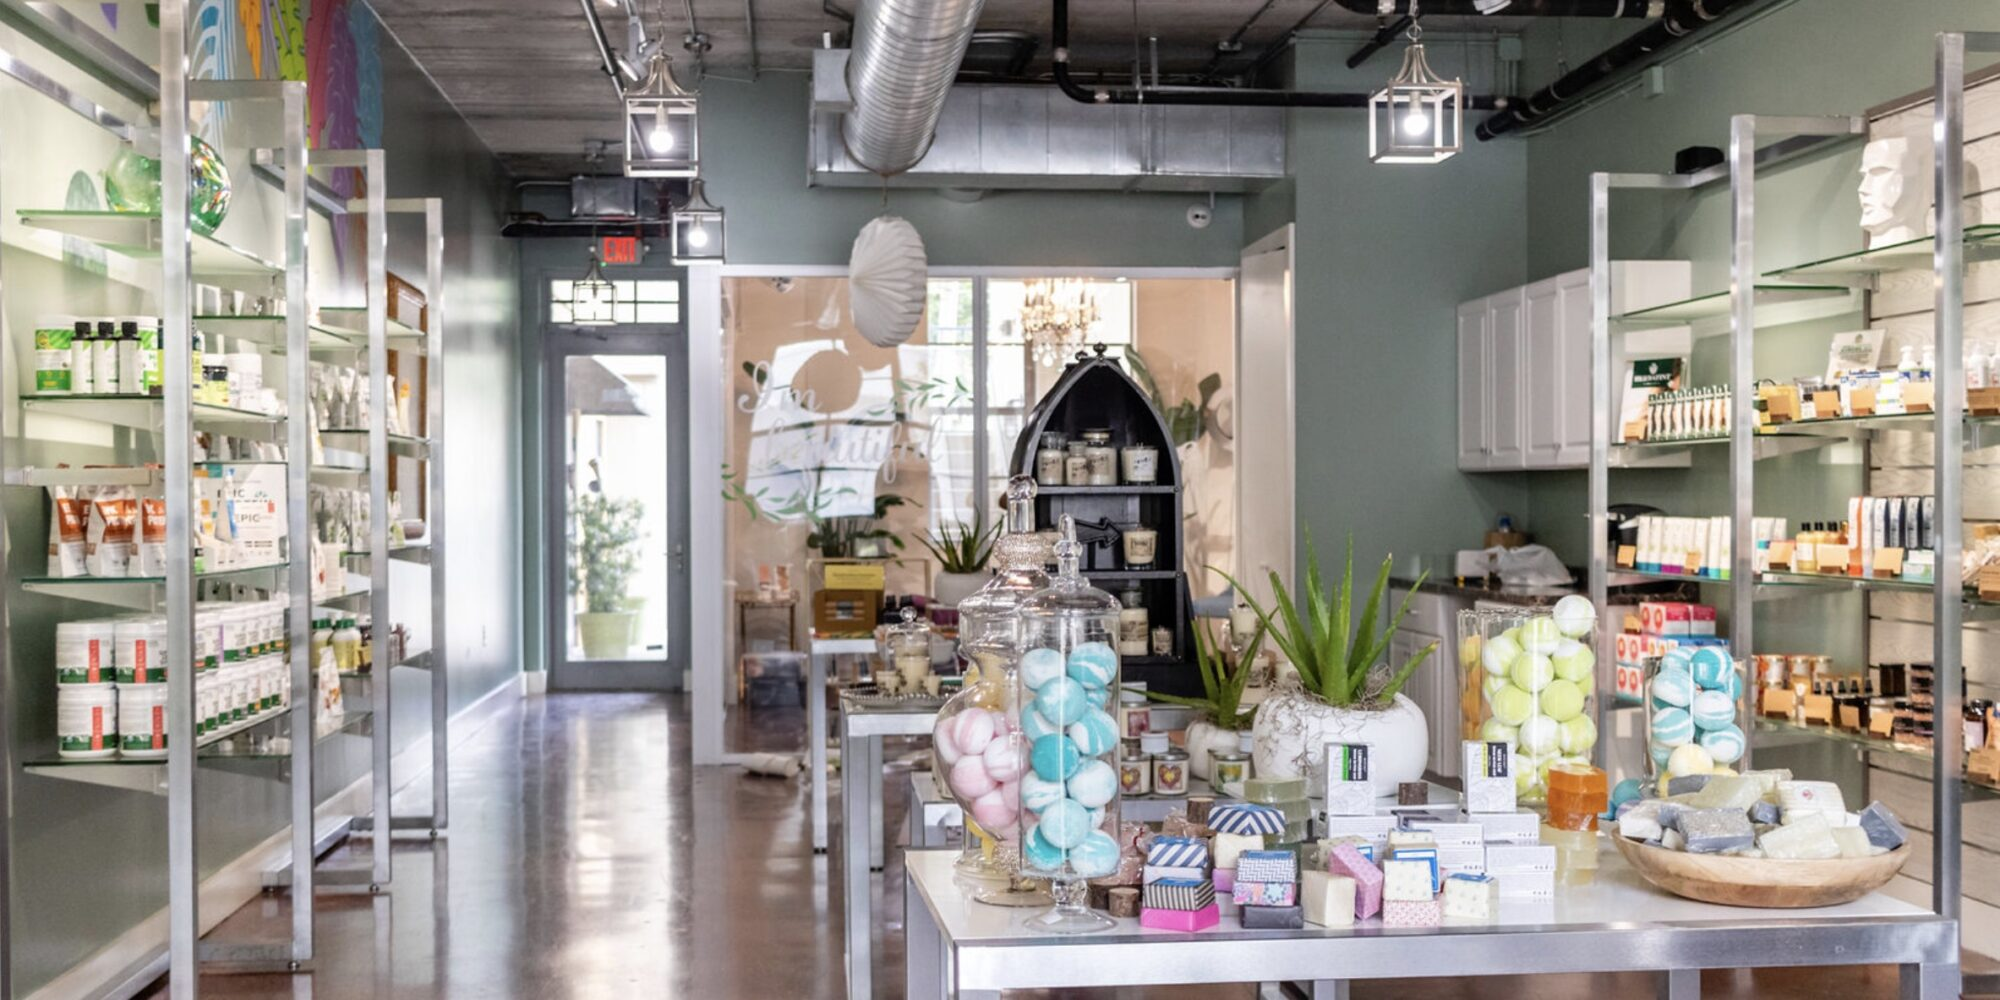 Beauty Retailer Vegan Fine Body Set To Open In Boca Raton, Plans Expansion To Other US Cities